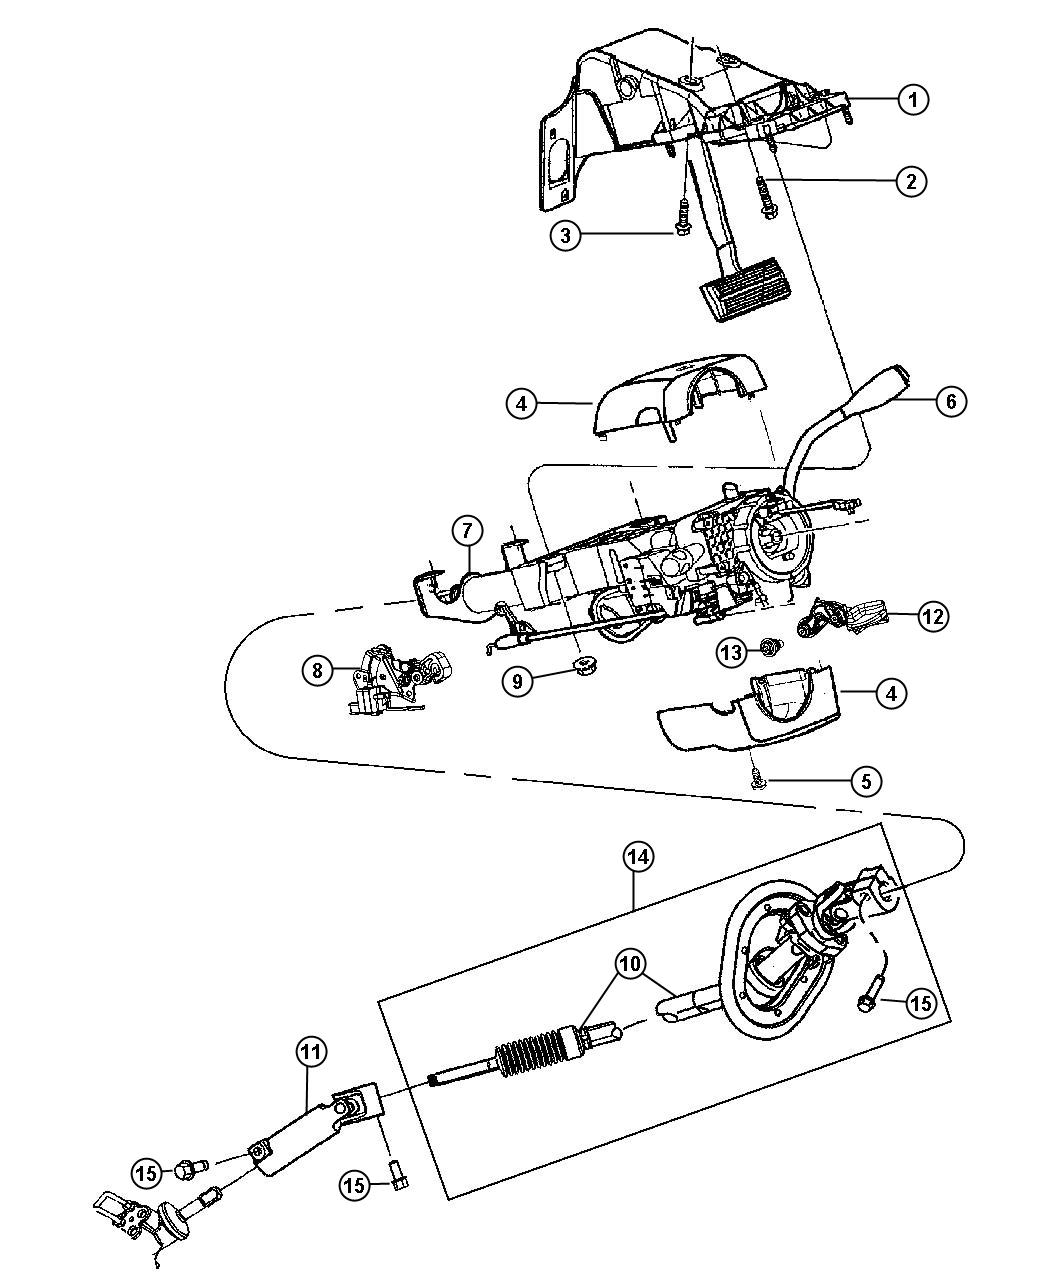 2013 Dodge Ram 2500 Shaft kit. Steering column